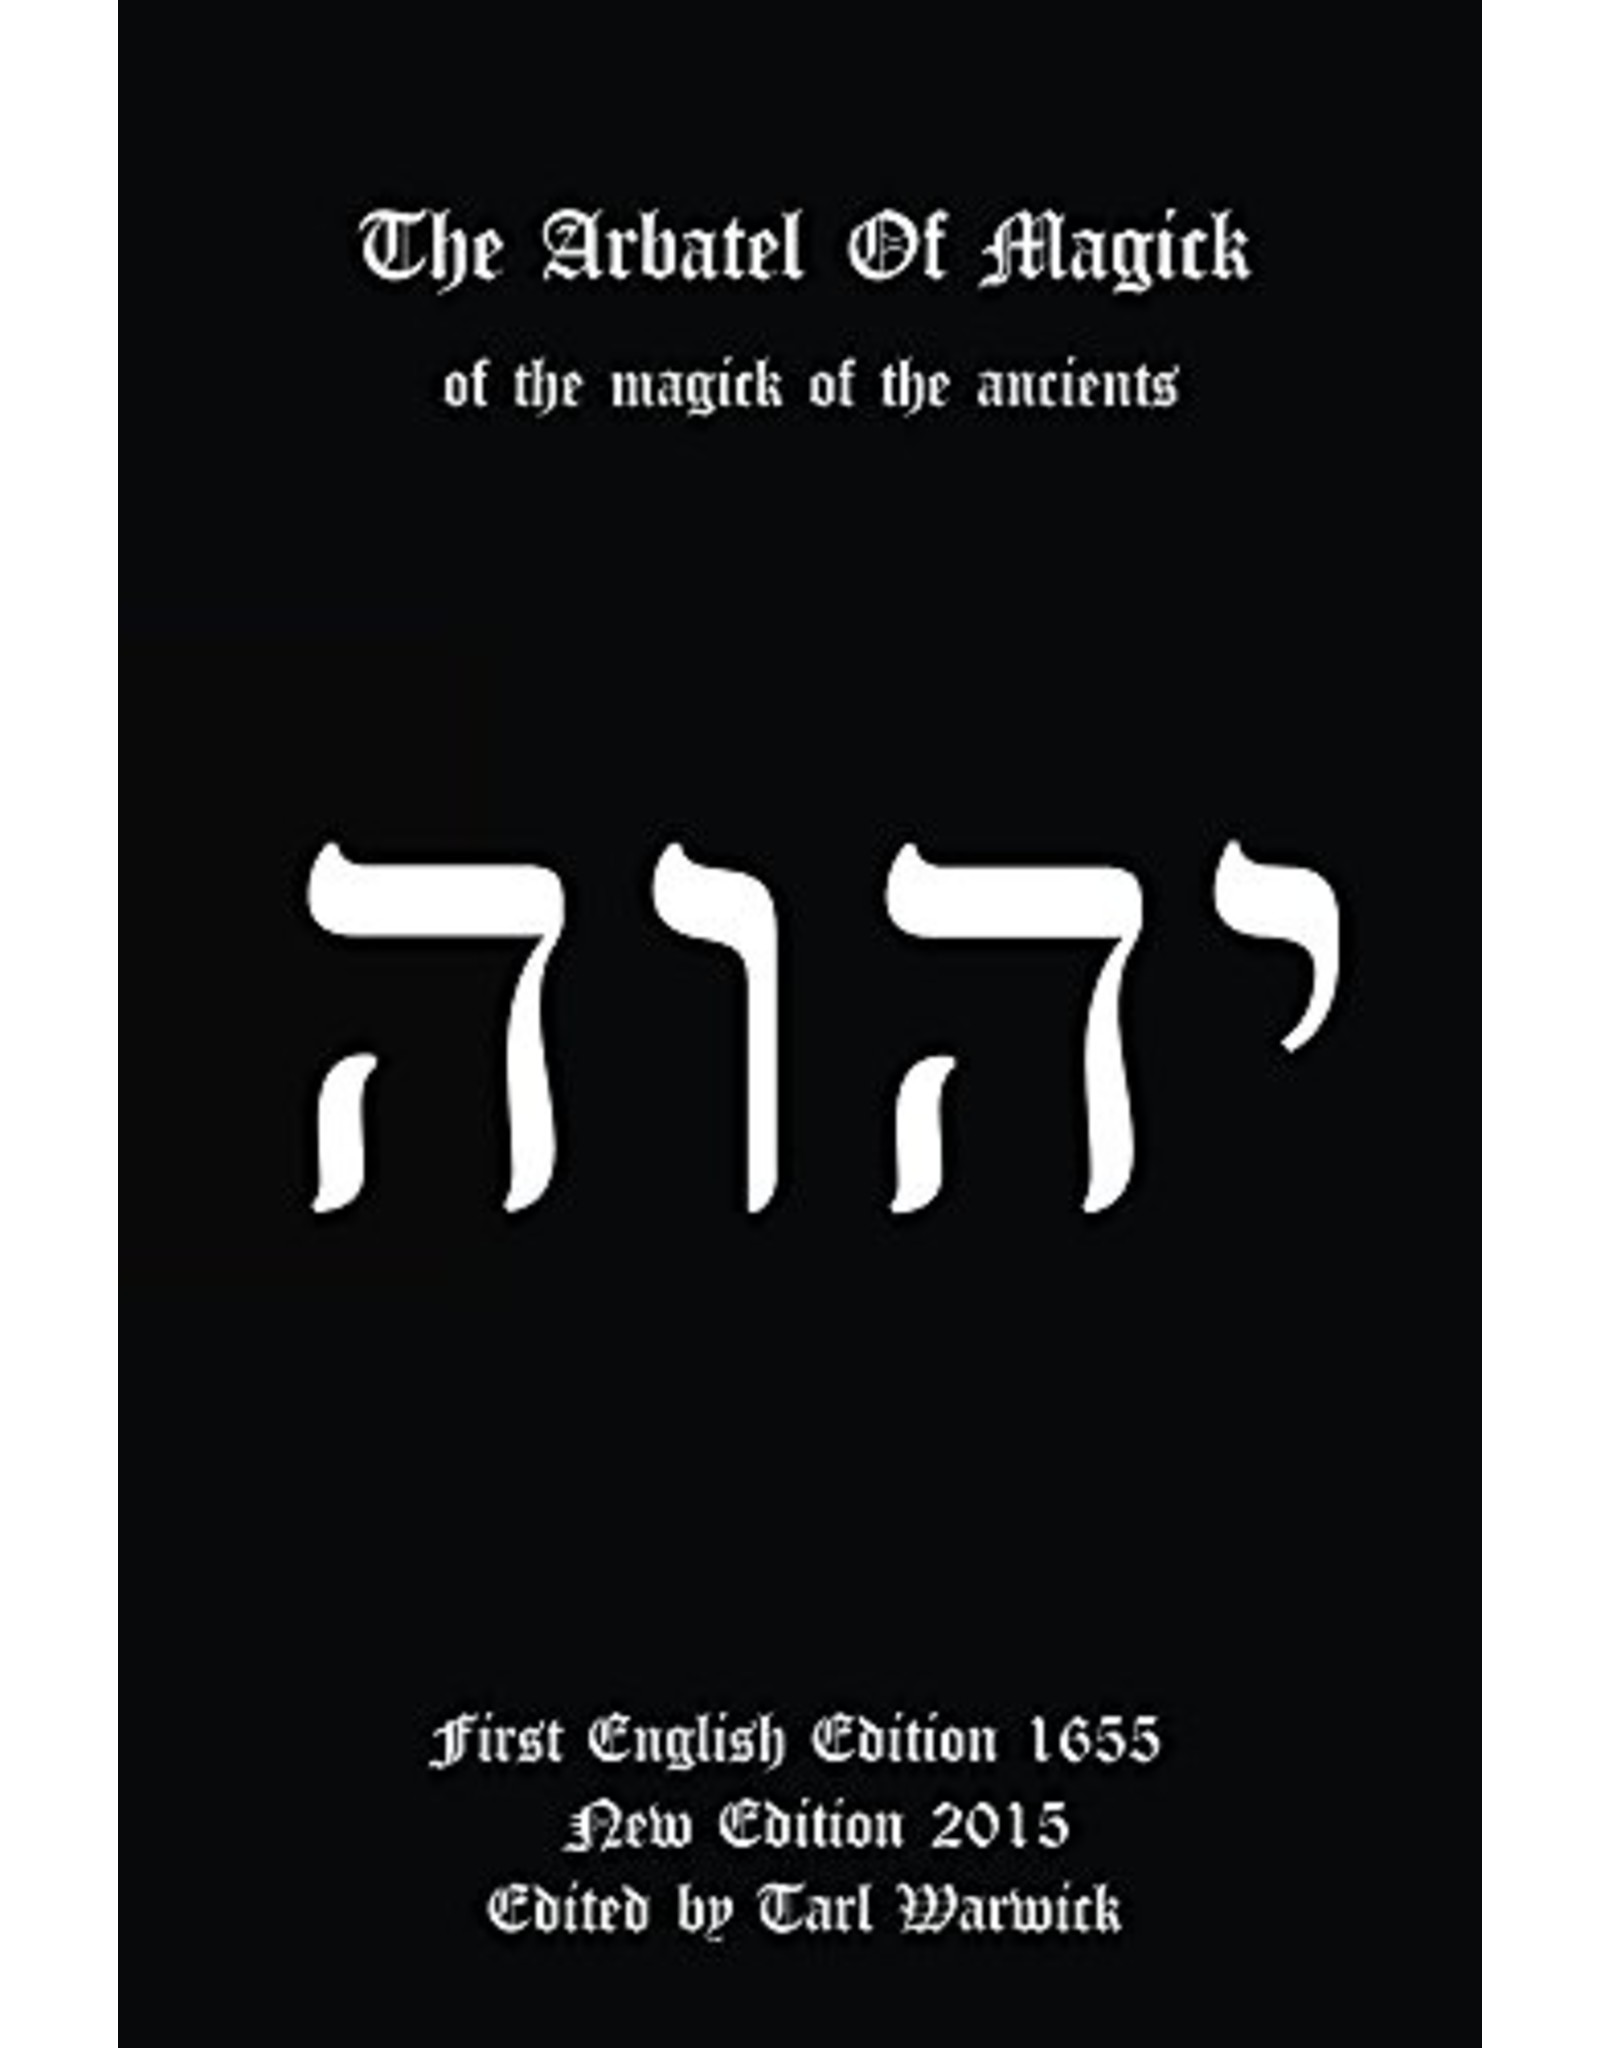 The Arbatel of Magick of the Magick of the Ancients